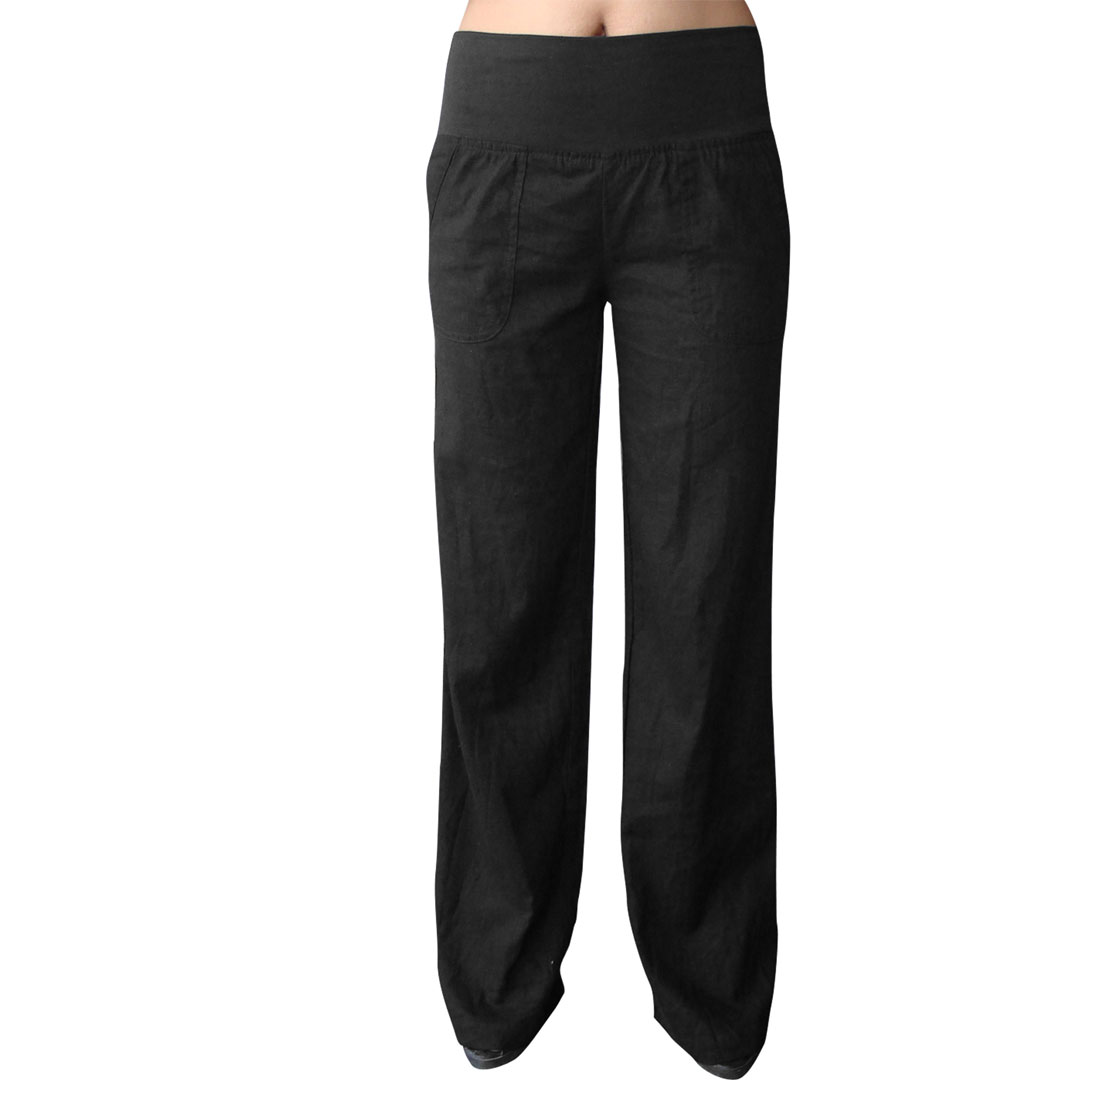 Elastic Waist Slanting Pockets Solid Black Leisure Pants L for Women